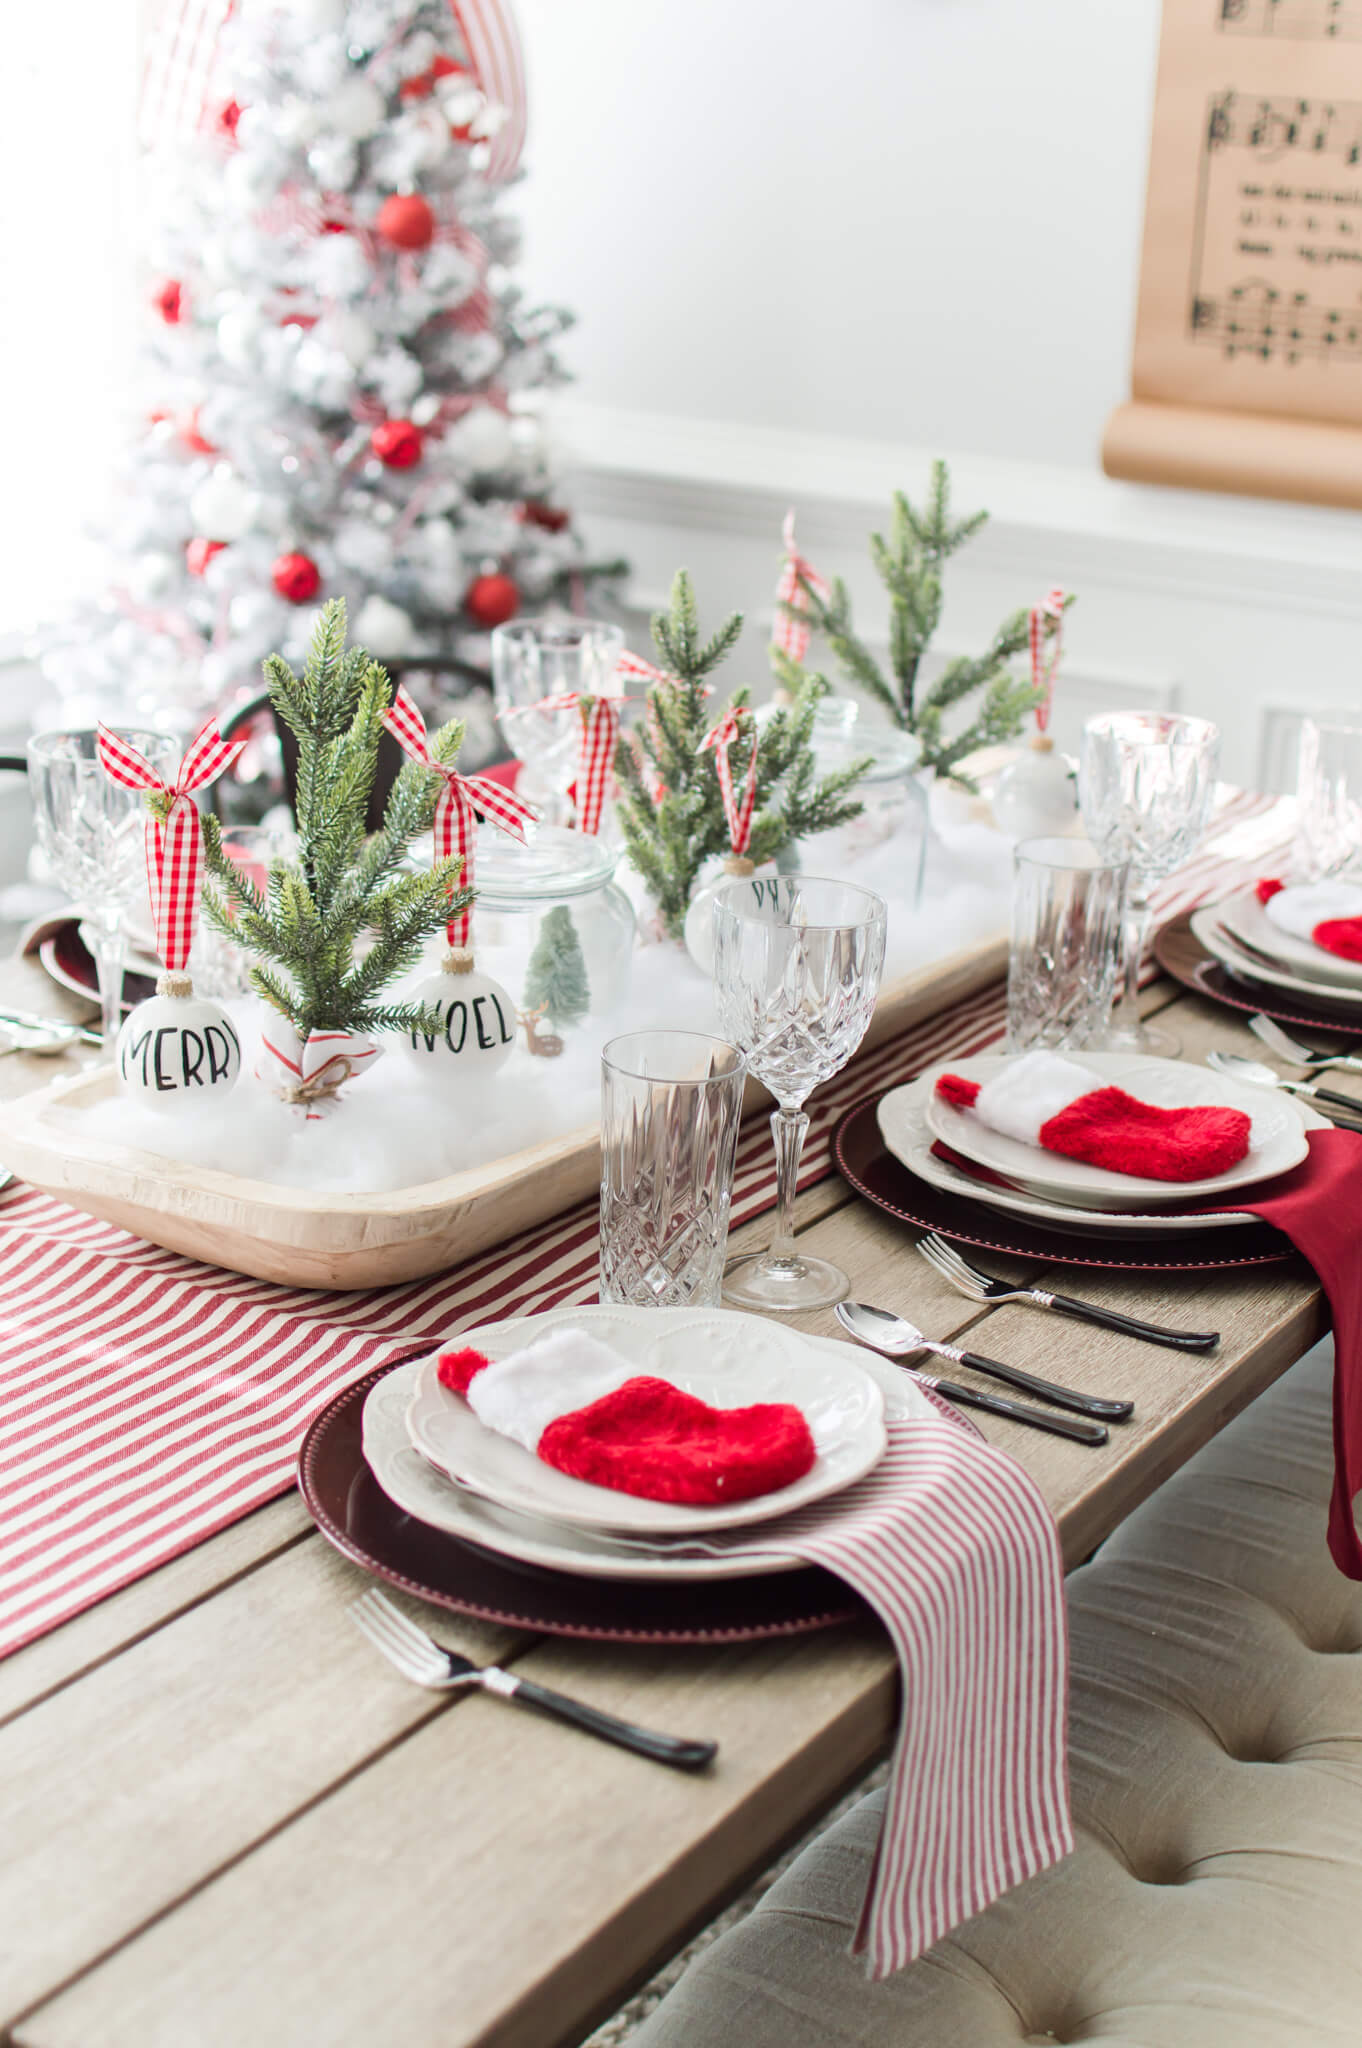 Red and White Christmas Tablescape + Table Setting Tips Video / A Hosting Home Blog